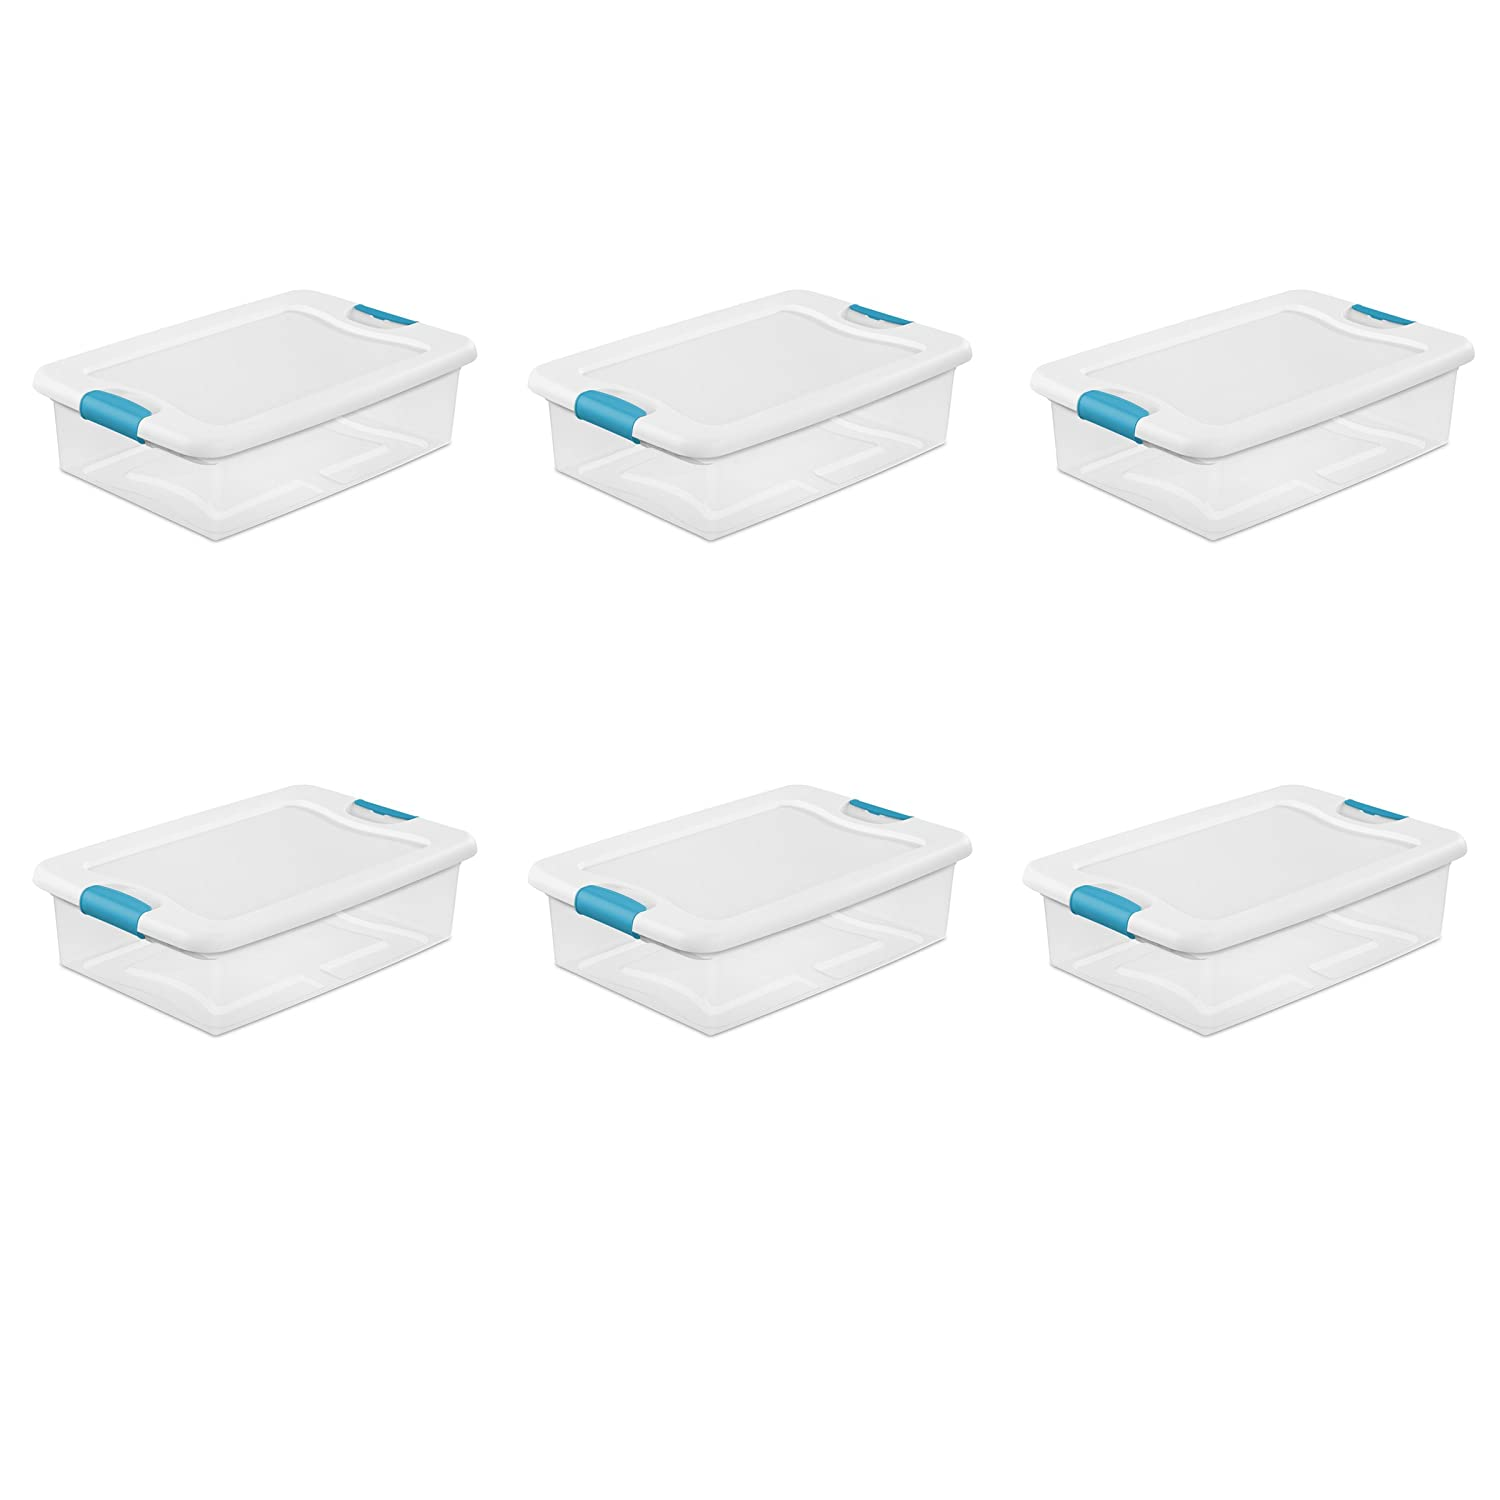 Sterilite 1496800632 quart/30 L Latching Box with Clear Base, White Lid and Colored Latches, 6-Pack